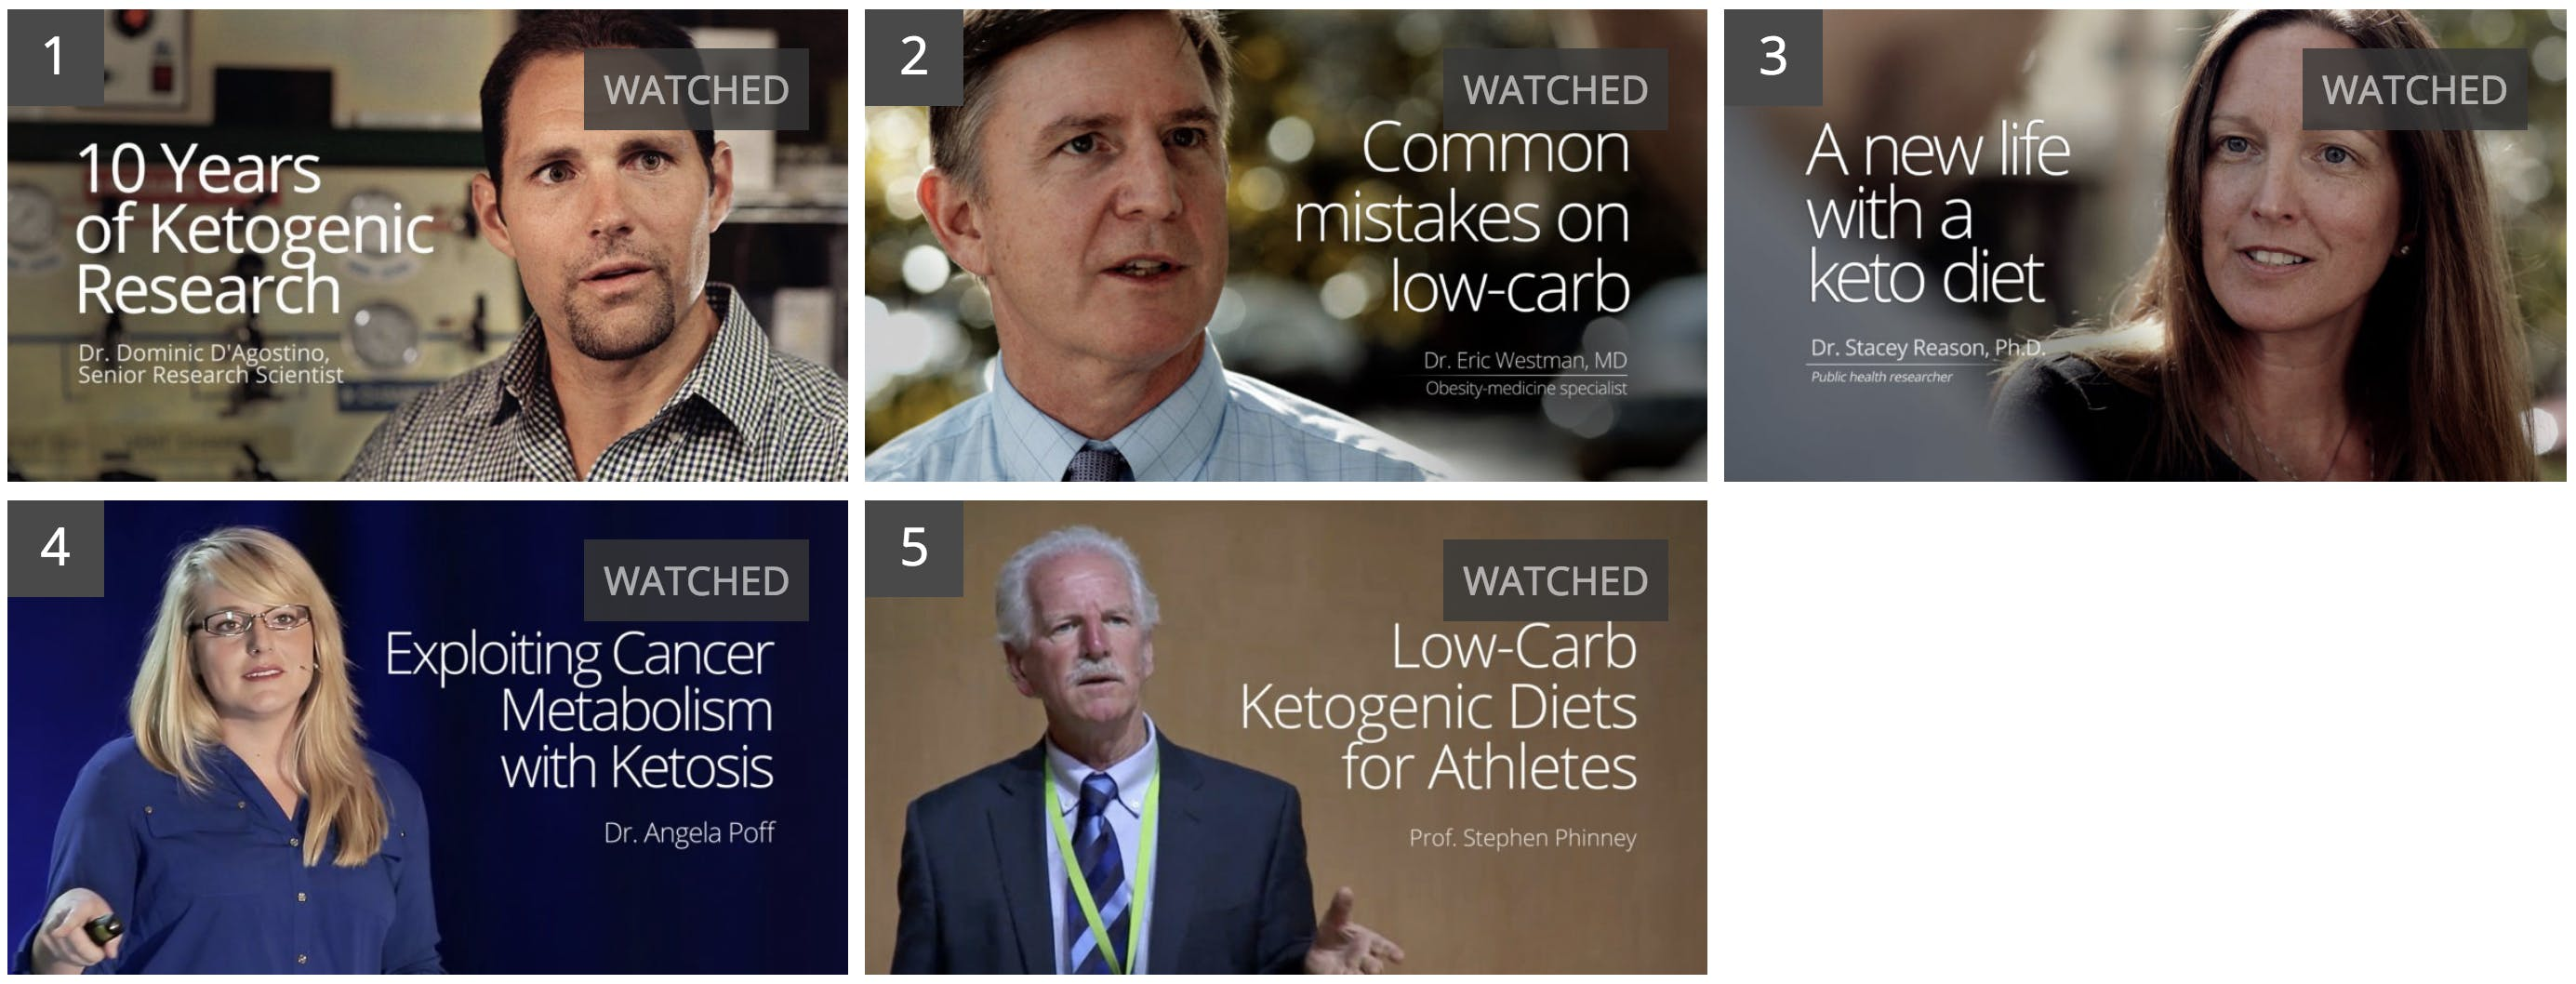 Top videos about advanced low-carb topics